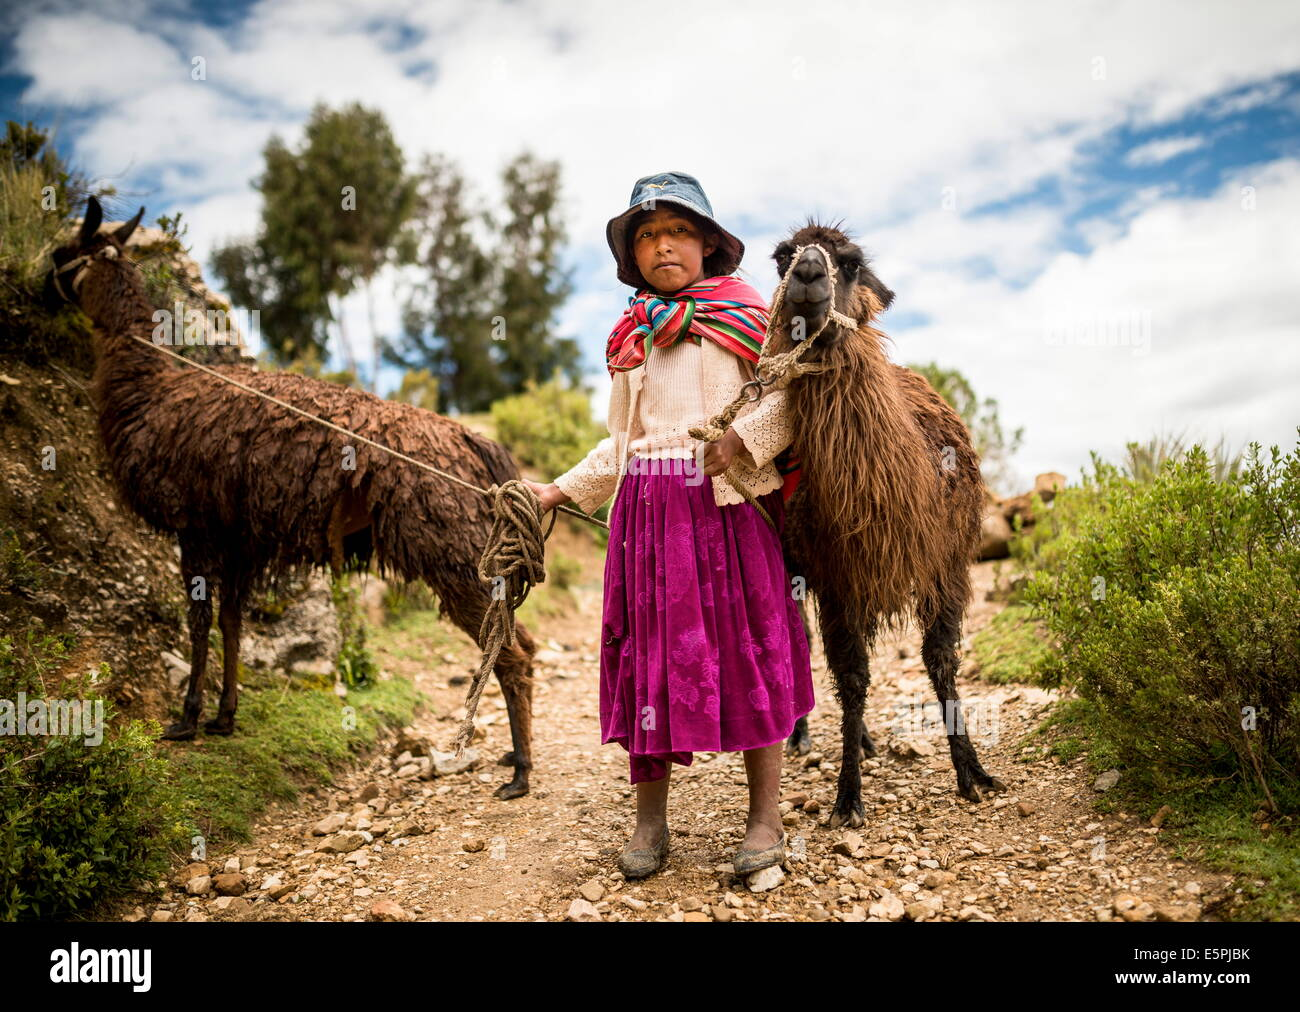 Portrait of Mariel with her two Llamas, Isla del Sol, Lake Titicaca, Bolivia, South America - Stock Image